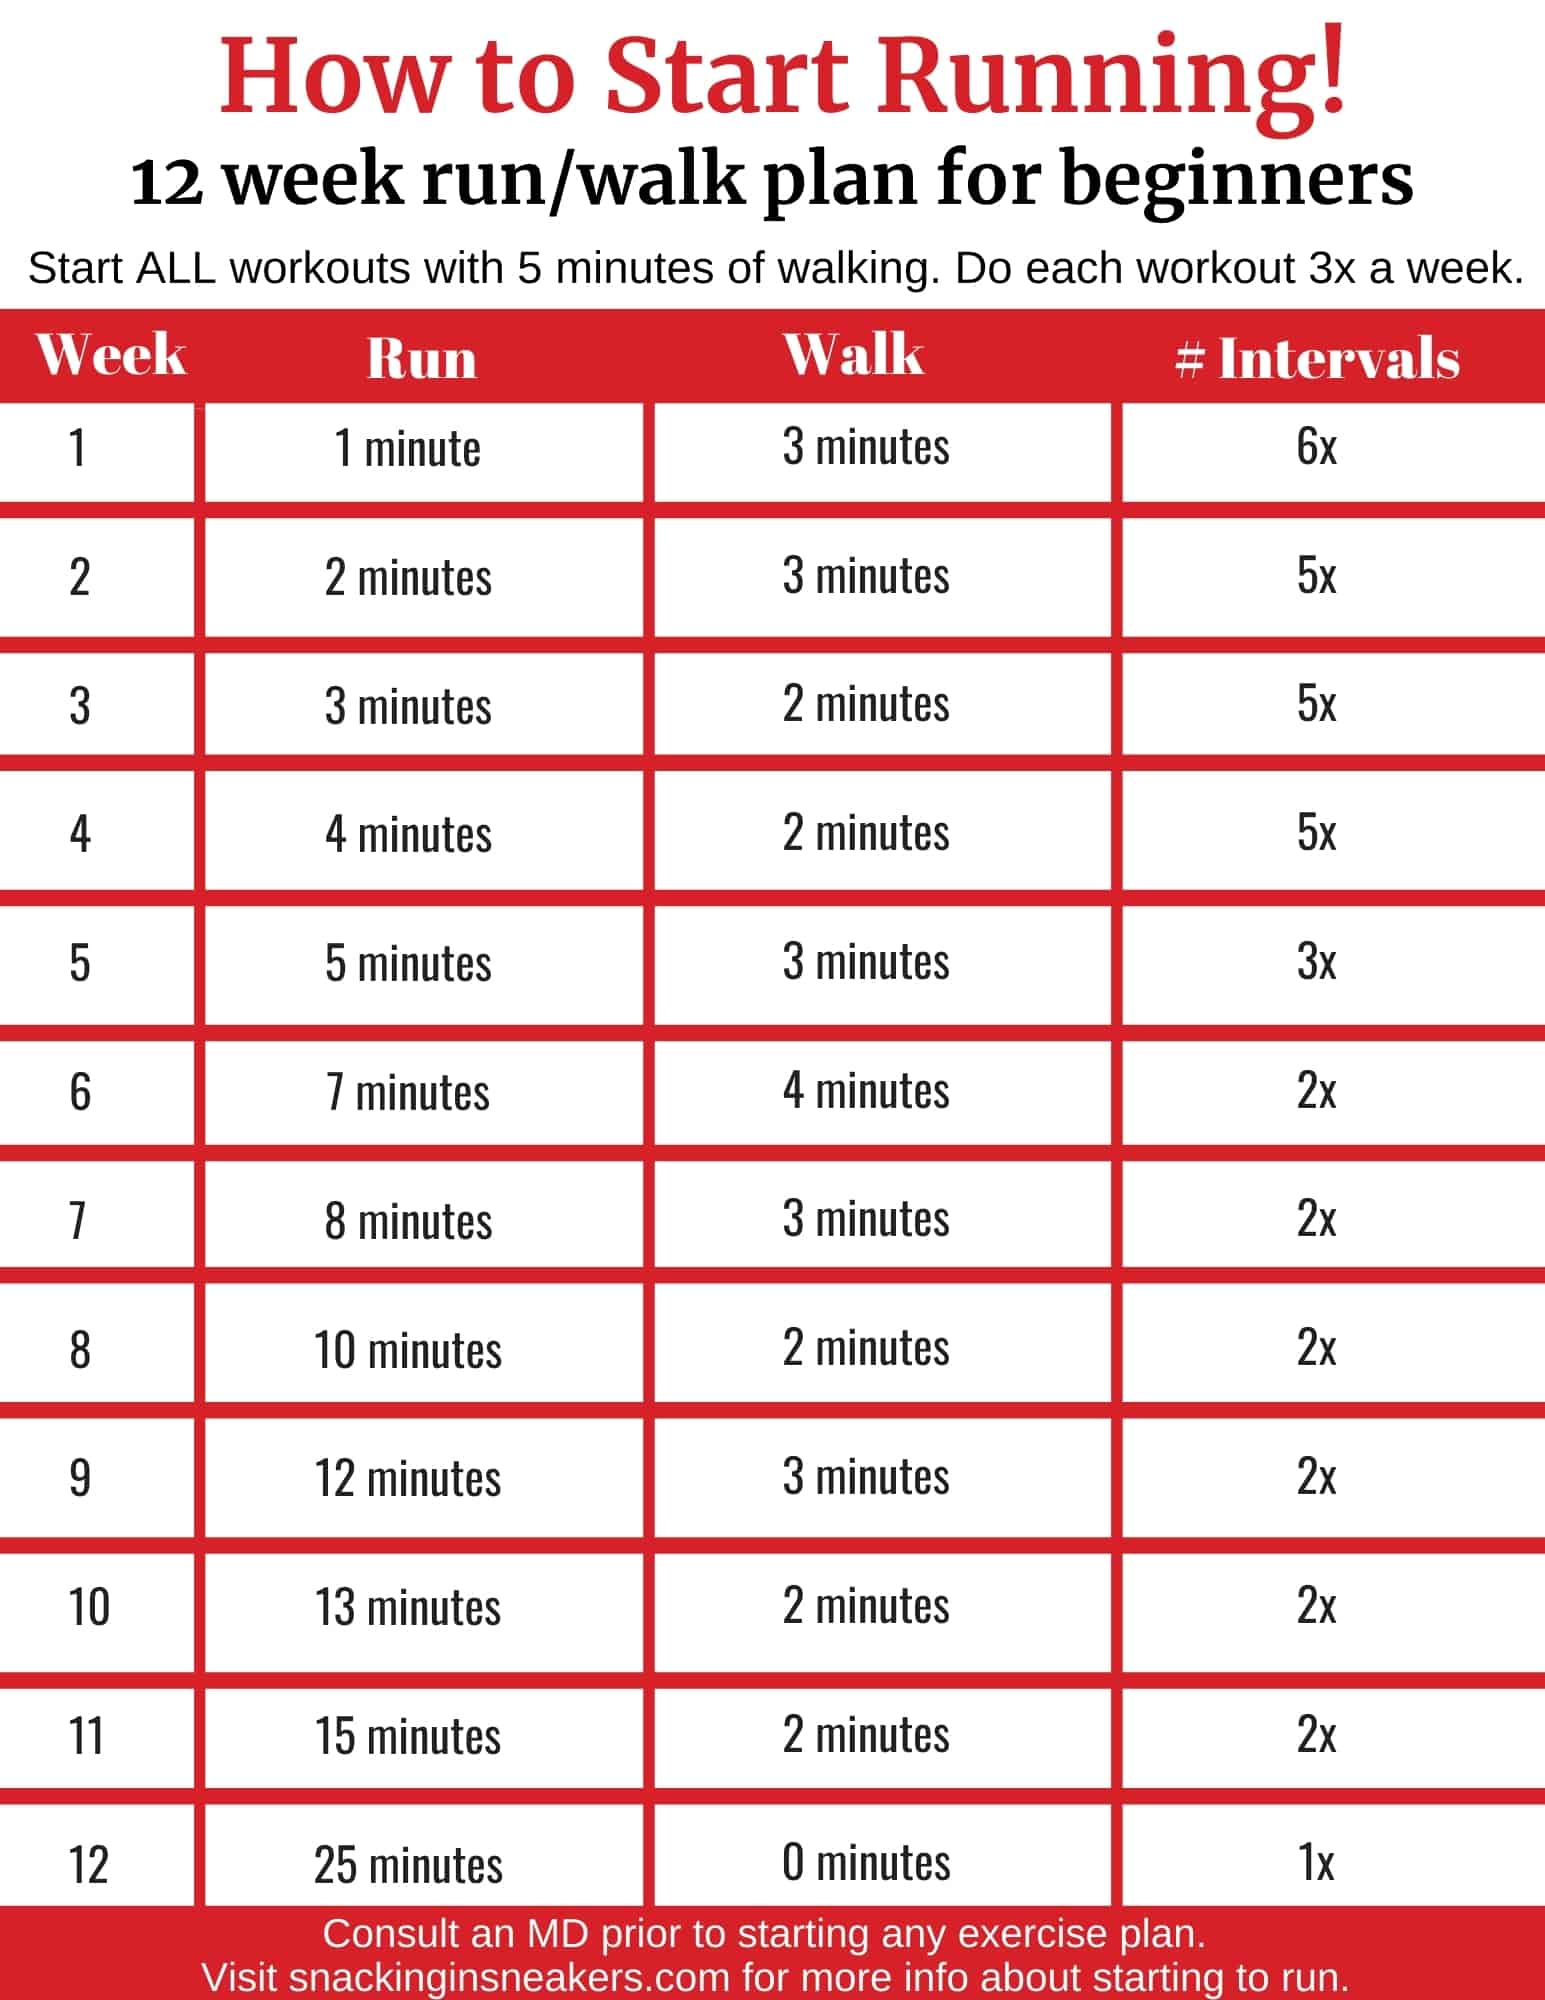 12 week run walk plan to start jogging